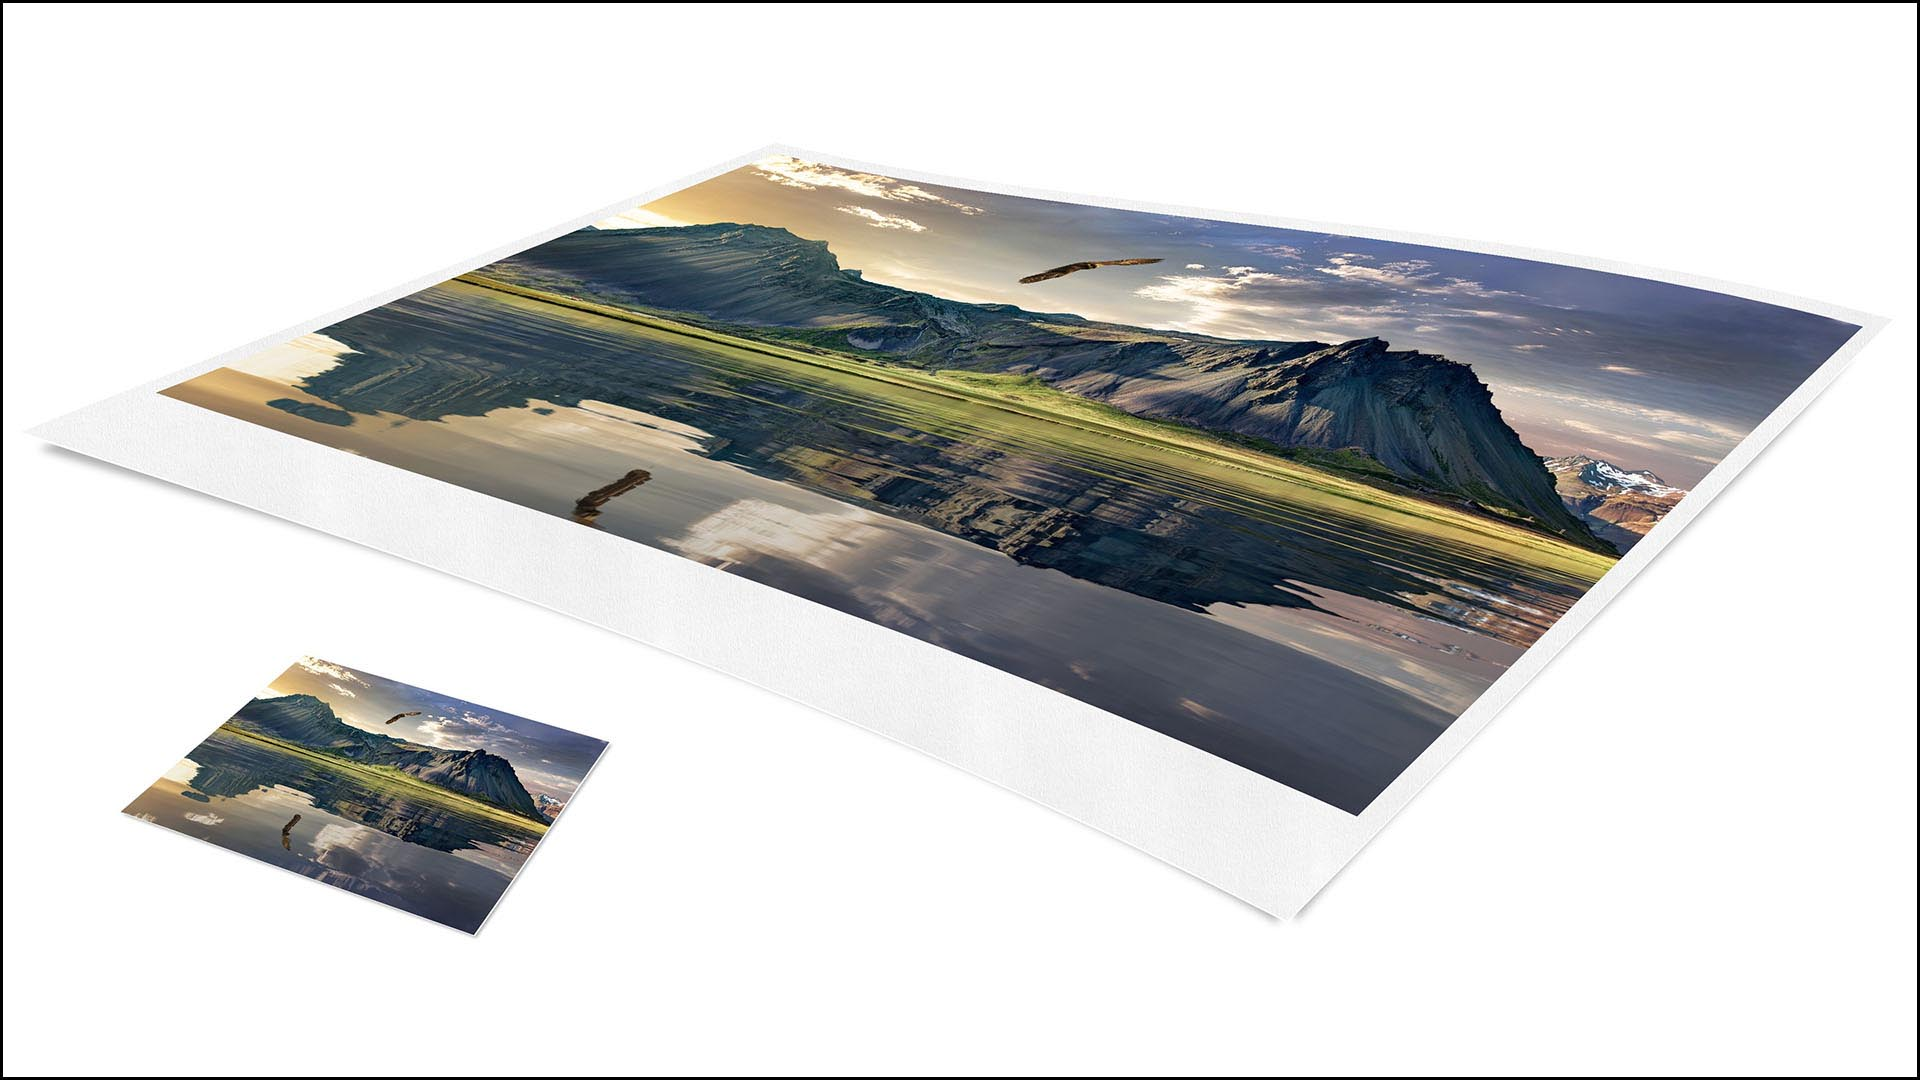 Lesson 18 – Print Module - If you're looking at printing your work from the home/studio, then this is something you will want to learn about. Here we take a look at the print options Lightroom give you to get professional prints and print packages.